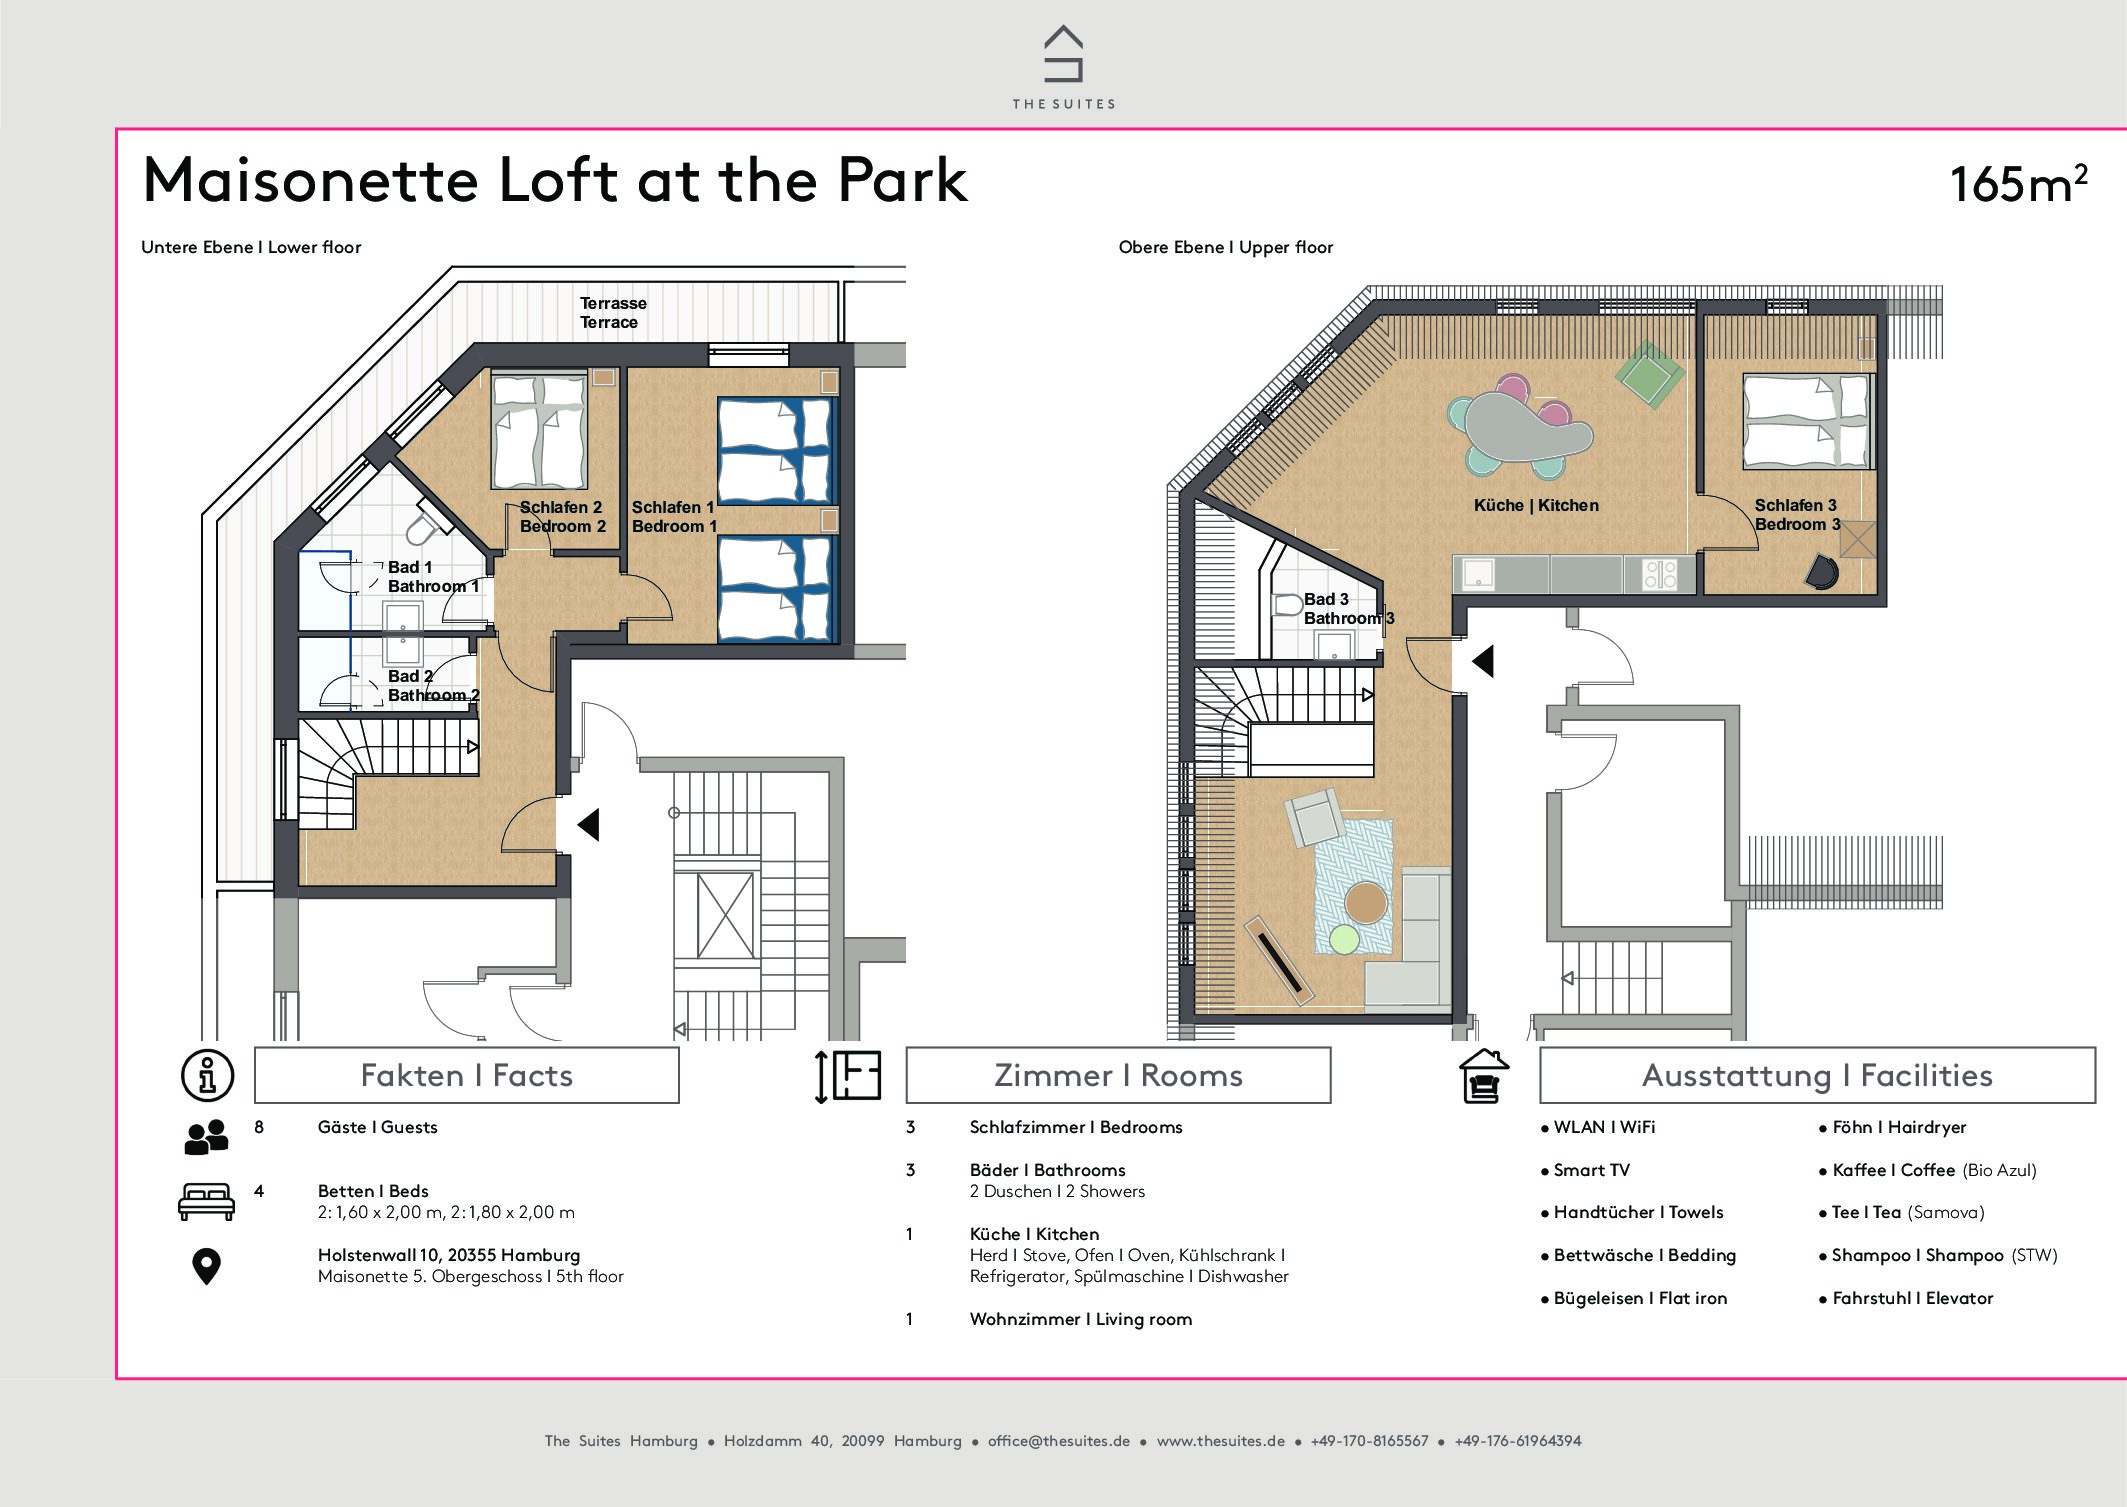 THE SUITES – Lofts at the Park